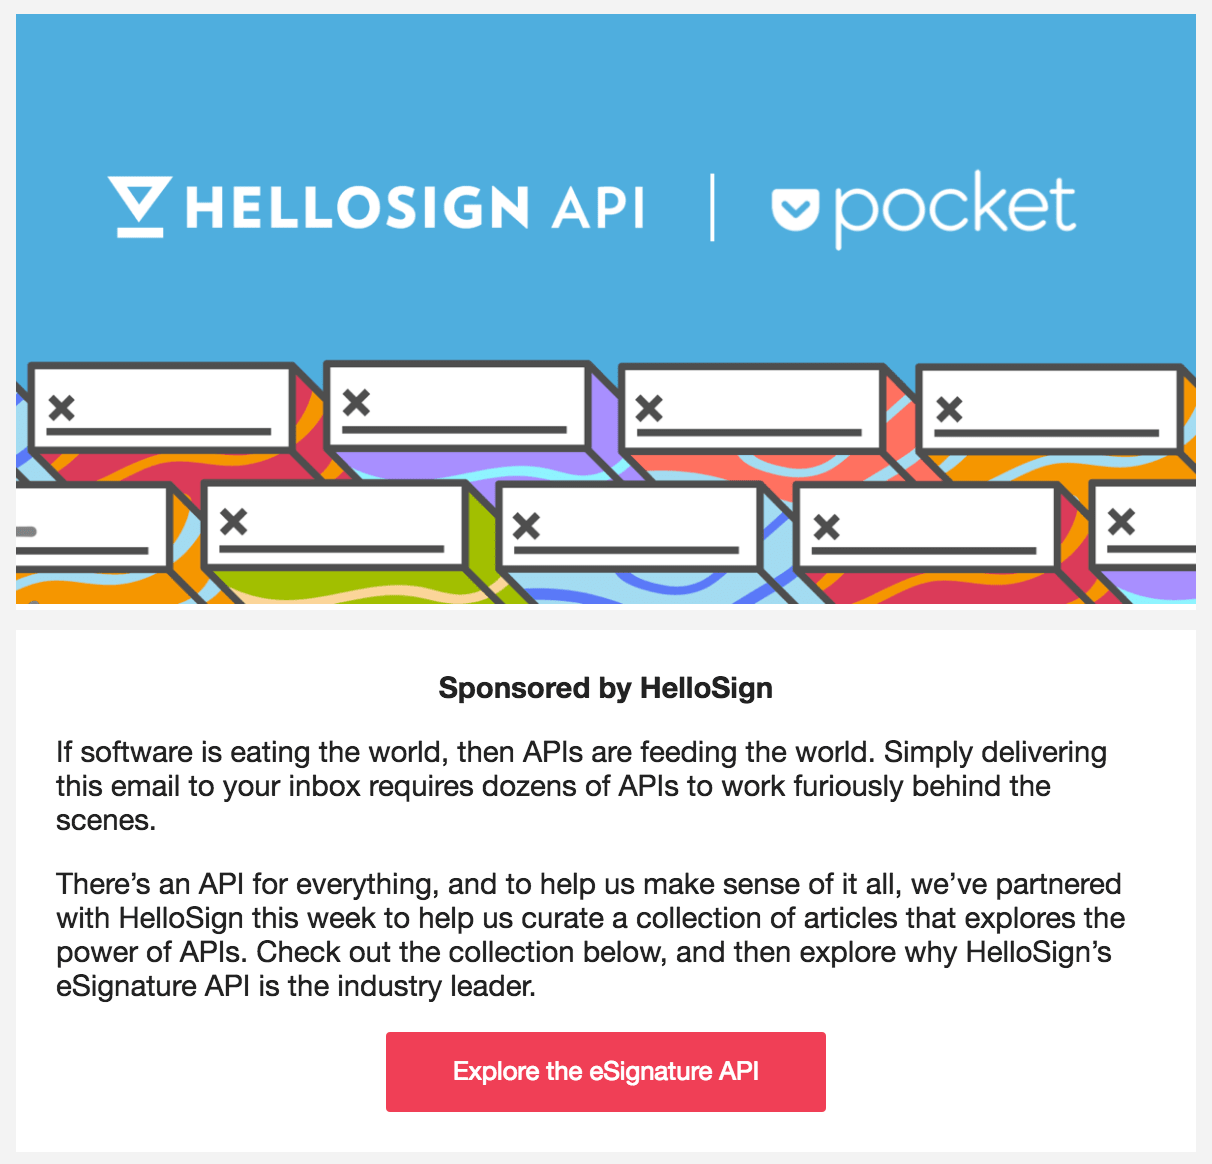 HelloSign sponsors the Pocket Hits newsletter